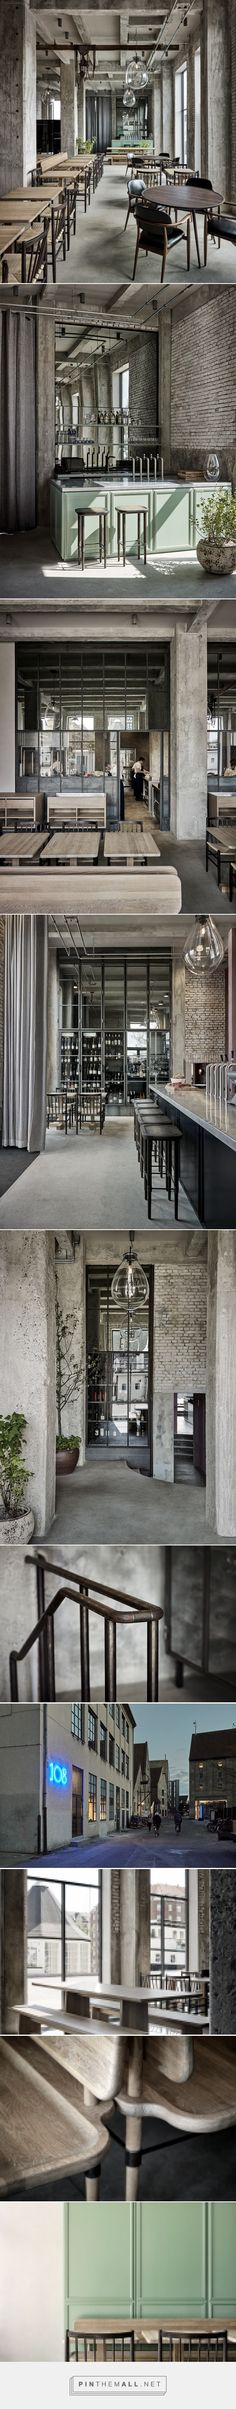 SPACE copenhagen converts warehouse into restaurant 108 http://www.designboom.com/architecture/space-copenhagen-restaurant-108-copenhagen-rene-redzepi-interiors-11-23-2016/ - created via https://pinthemall.net